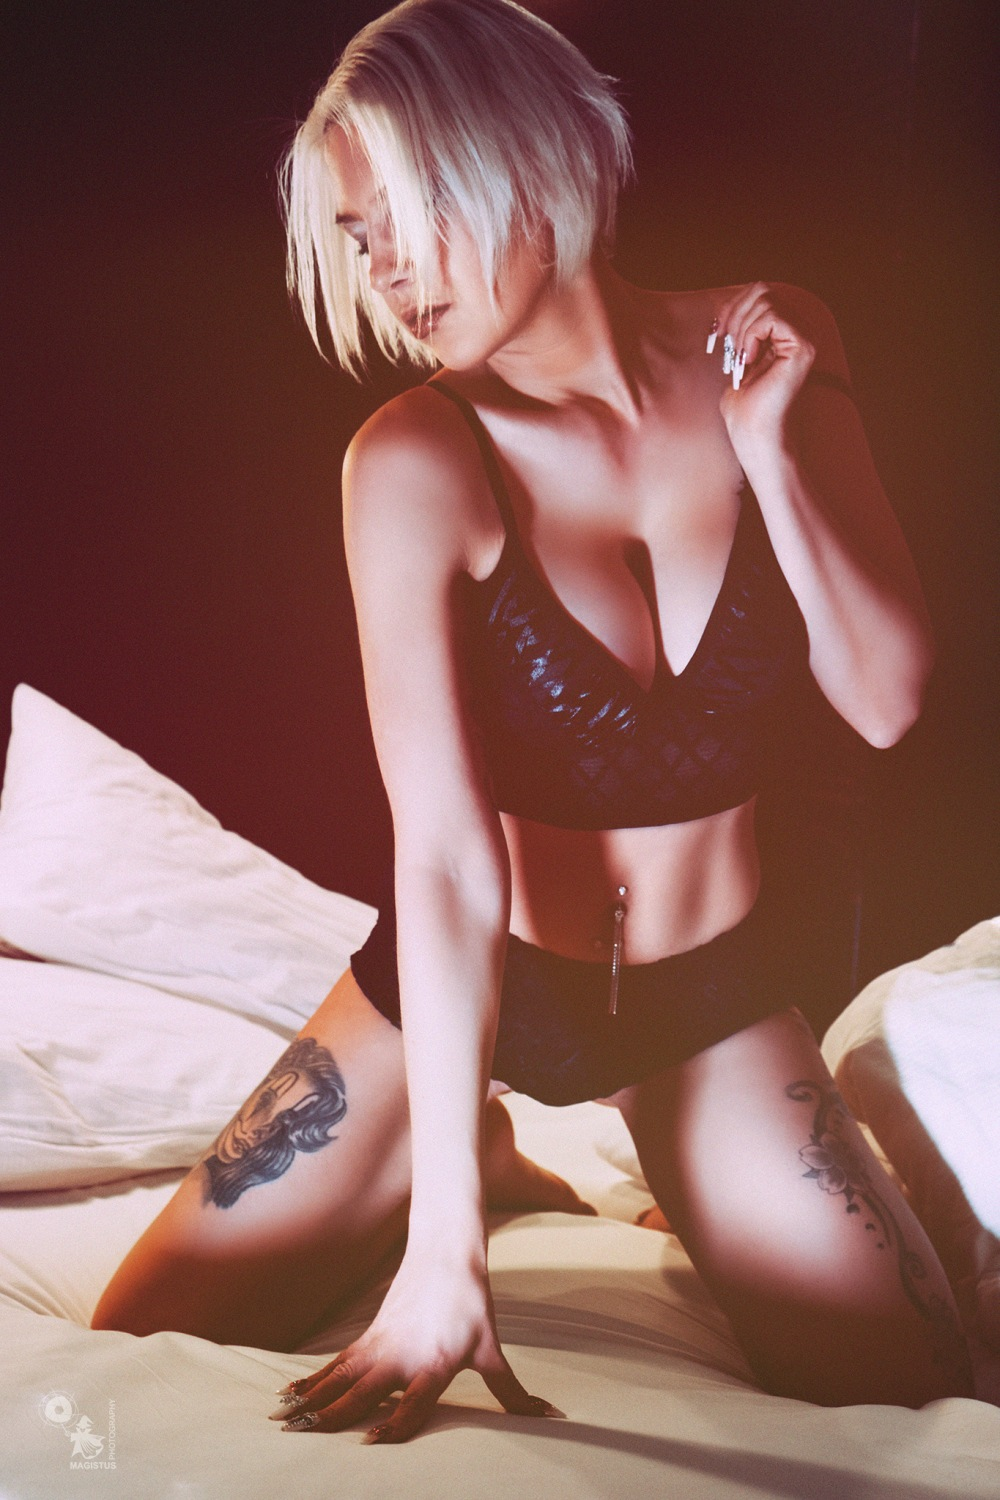 Light Lingerie - super sexy and busty girl is posing on the bed wearing black lingerie showing a big cleavage - © by Magistus